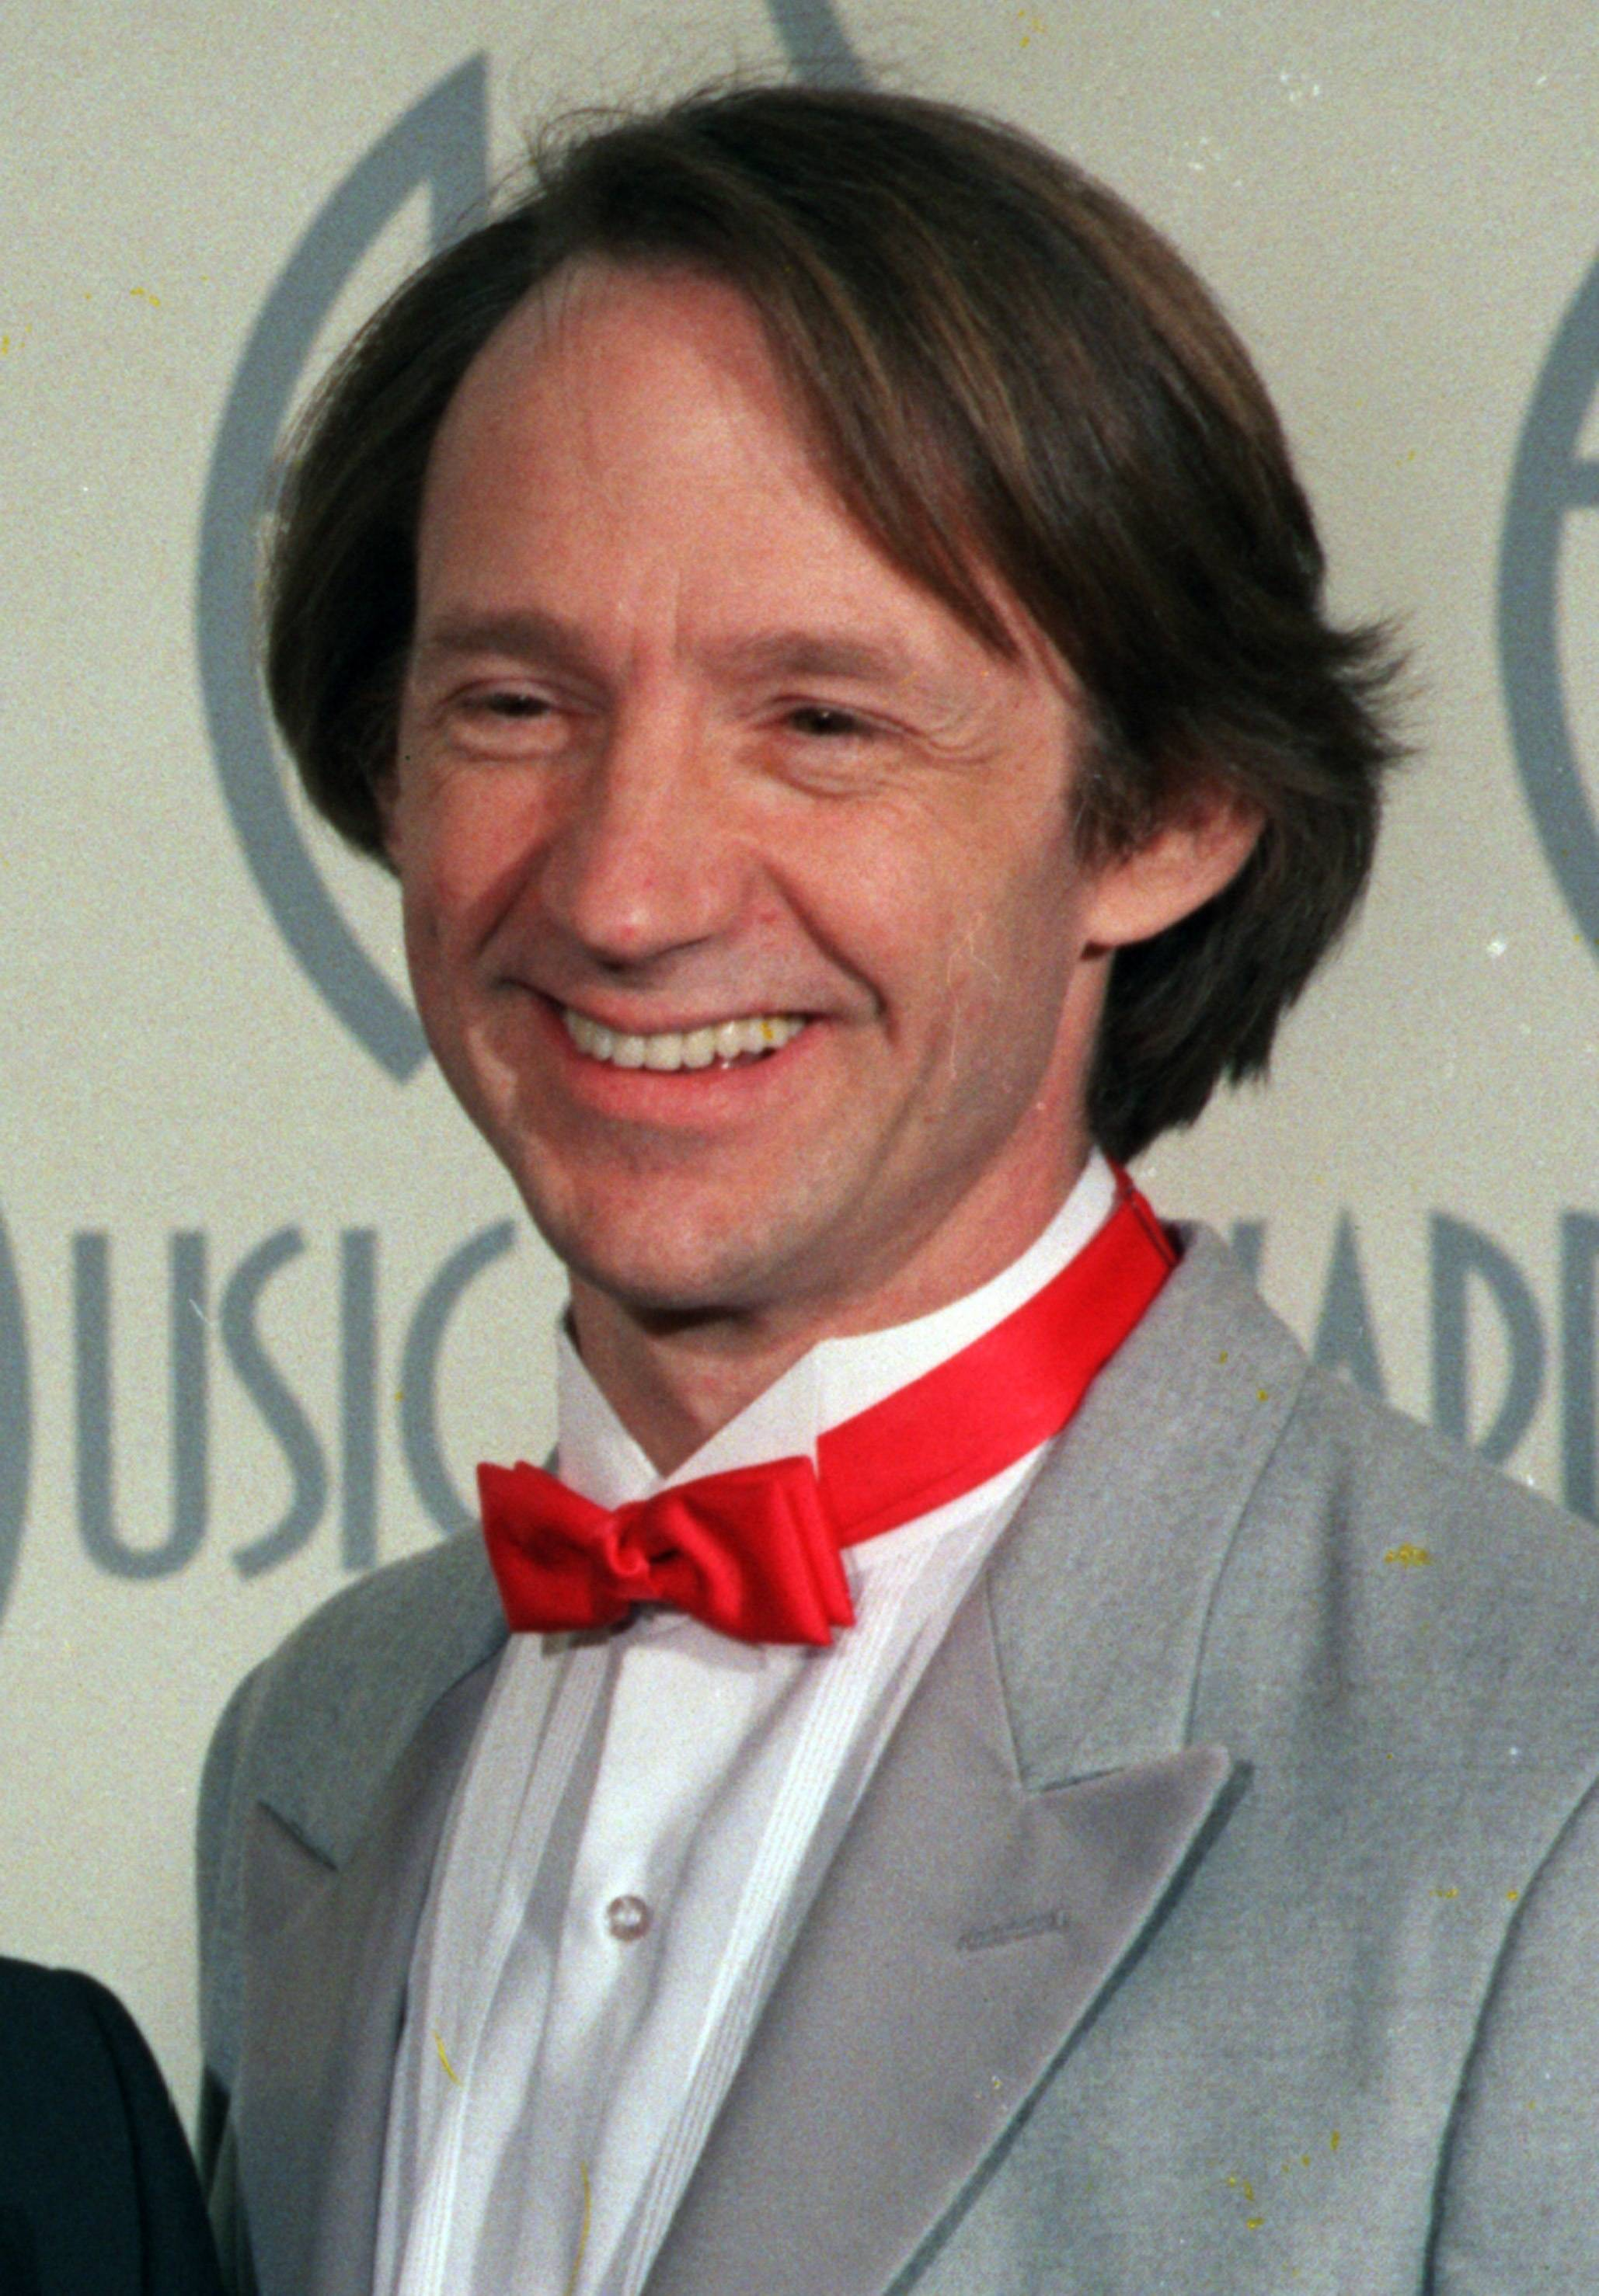 Peter Tork, a blues and folk musician who became a teeny-bopper sensation as a member of the Monkees, the wisecracking, made-for-TV pop group that imitated and briefly outsold the Beatles, died Feb. 21. He was 77.